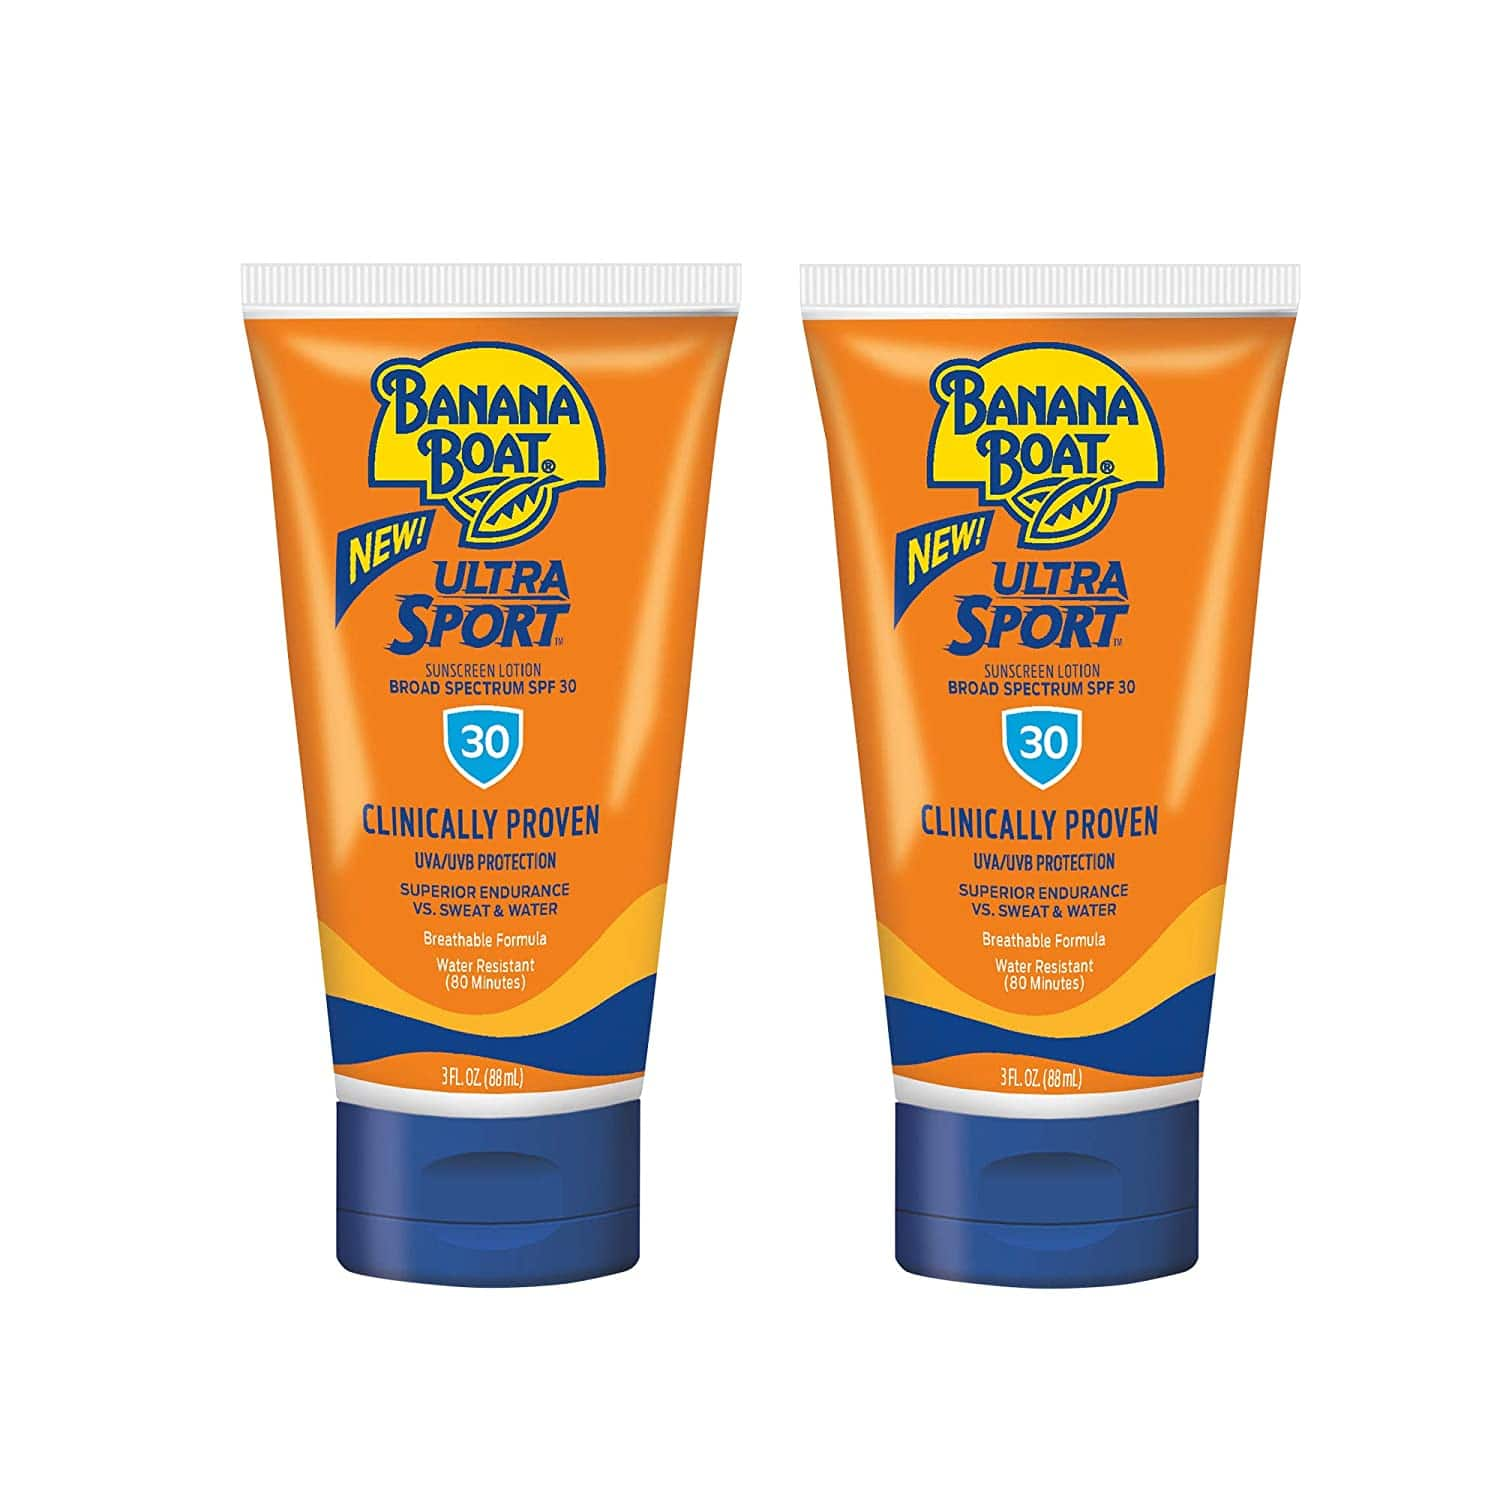 Amazon: Banana Boat Ultra Reef Friendly Sunscreen Lotion, Broad Spectrum SPF 30 Sport, 3 Ounce (Pack of 2), 6 Fl Oz - $4.18 w/15% S&S & Coupon, $5.32 w/5% S&S & Coupon